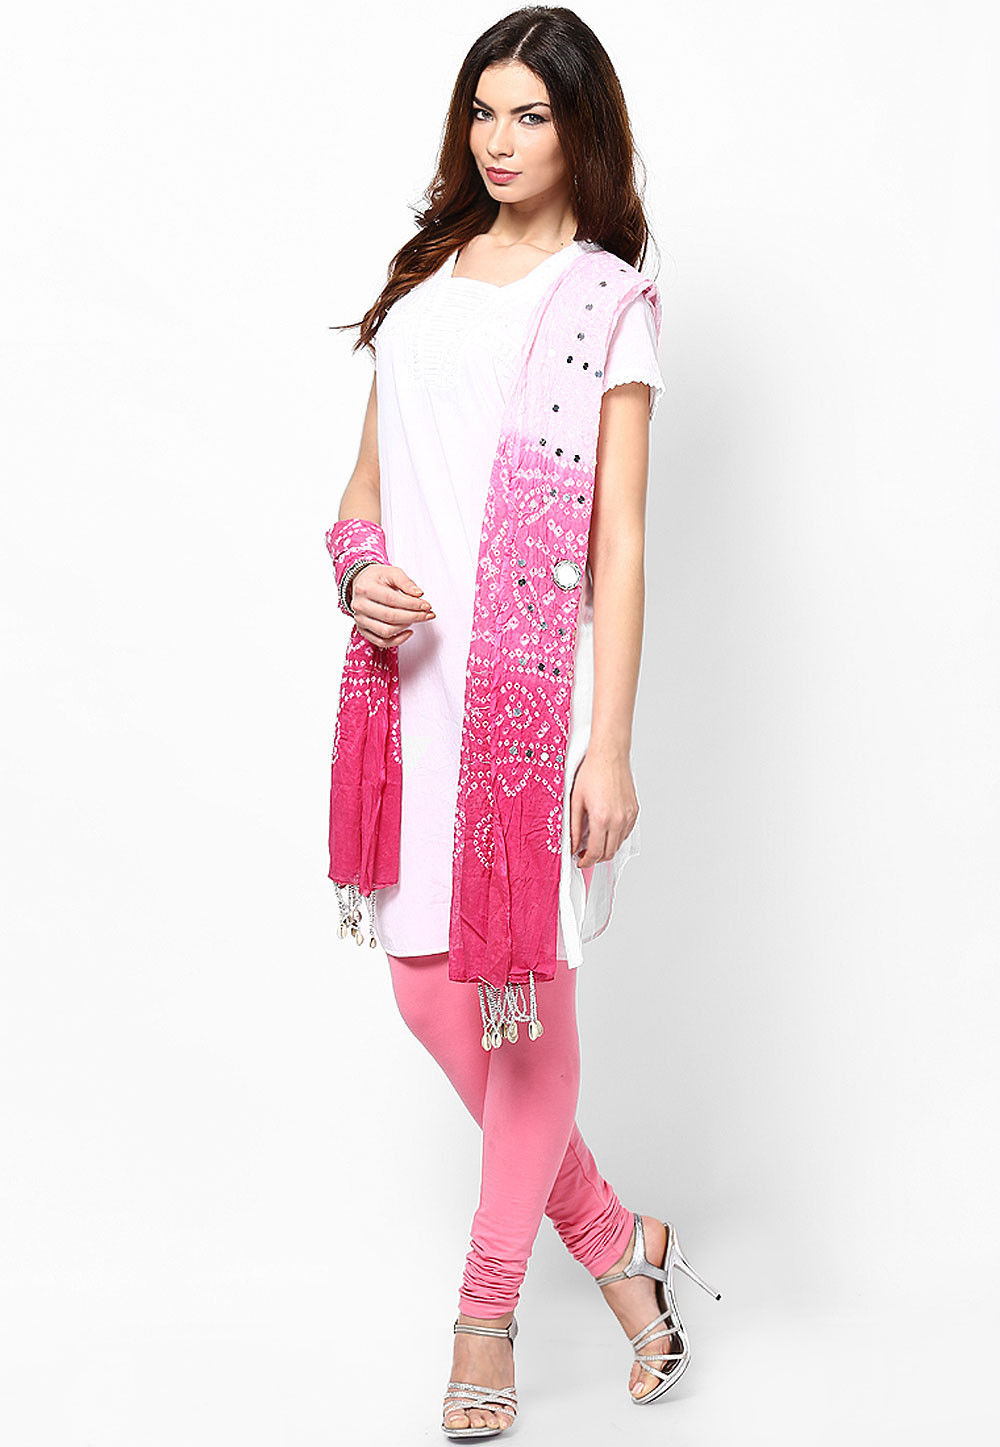 Bandhani Cotton Dupatta in Ombre Pink